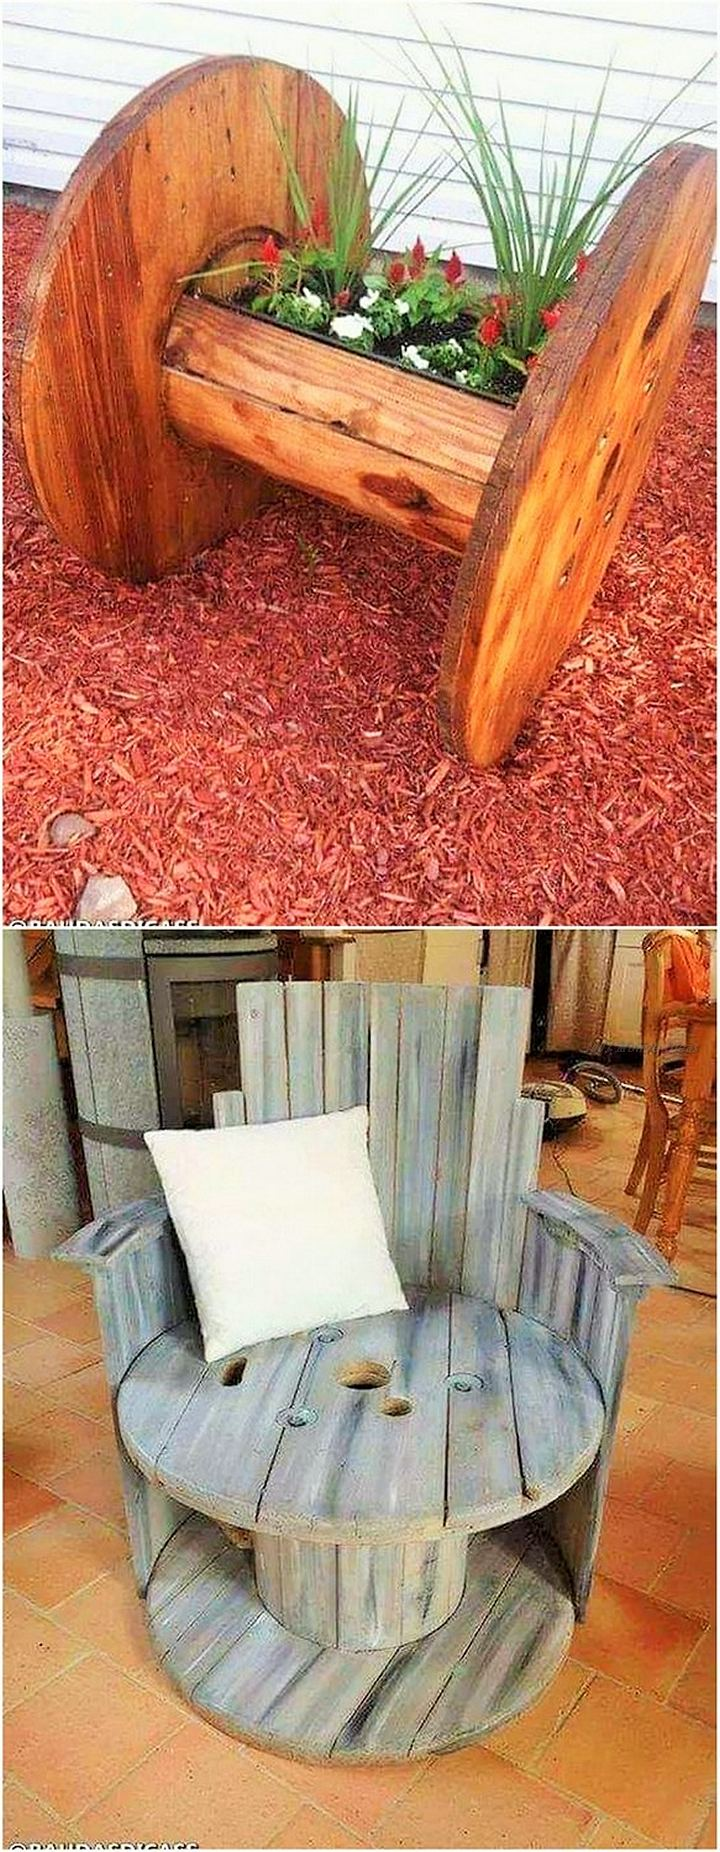 Wooden Pallets for Domestic and International Use- (4)